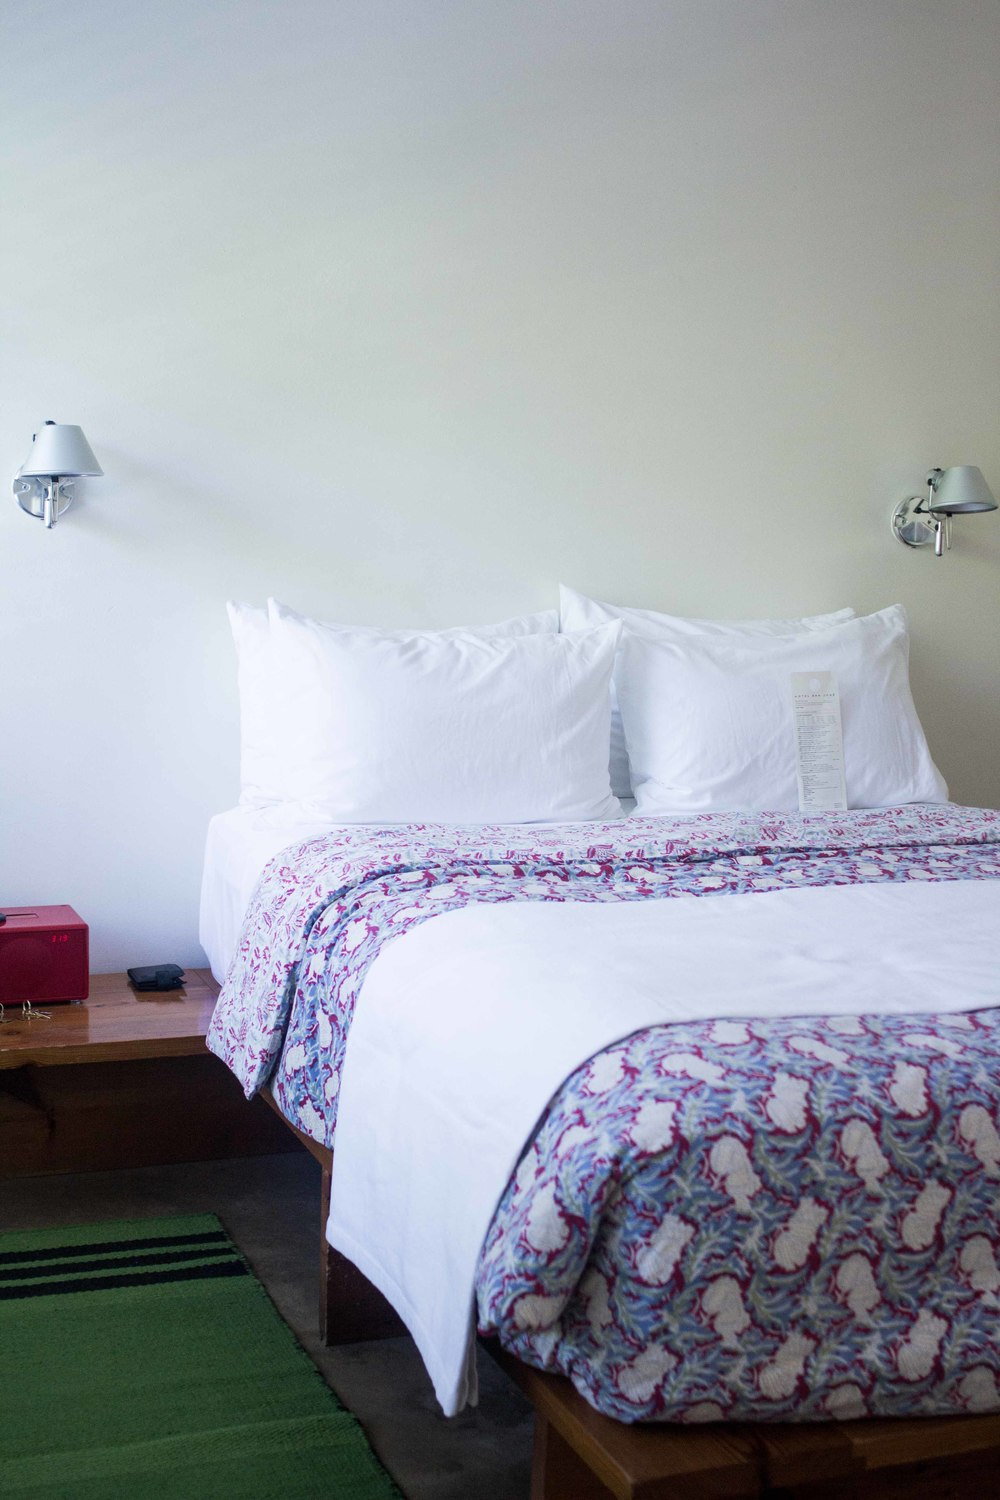 Our Austin Staycation: Hotel San Jose via All the Delights